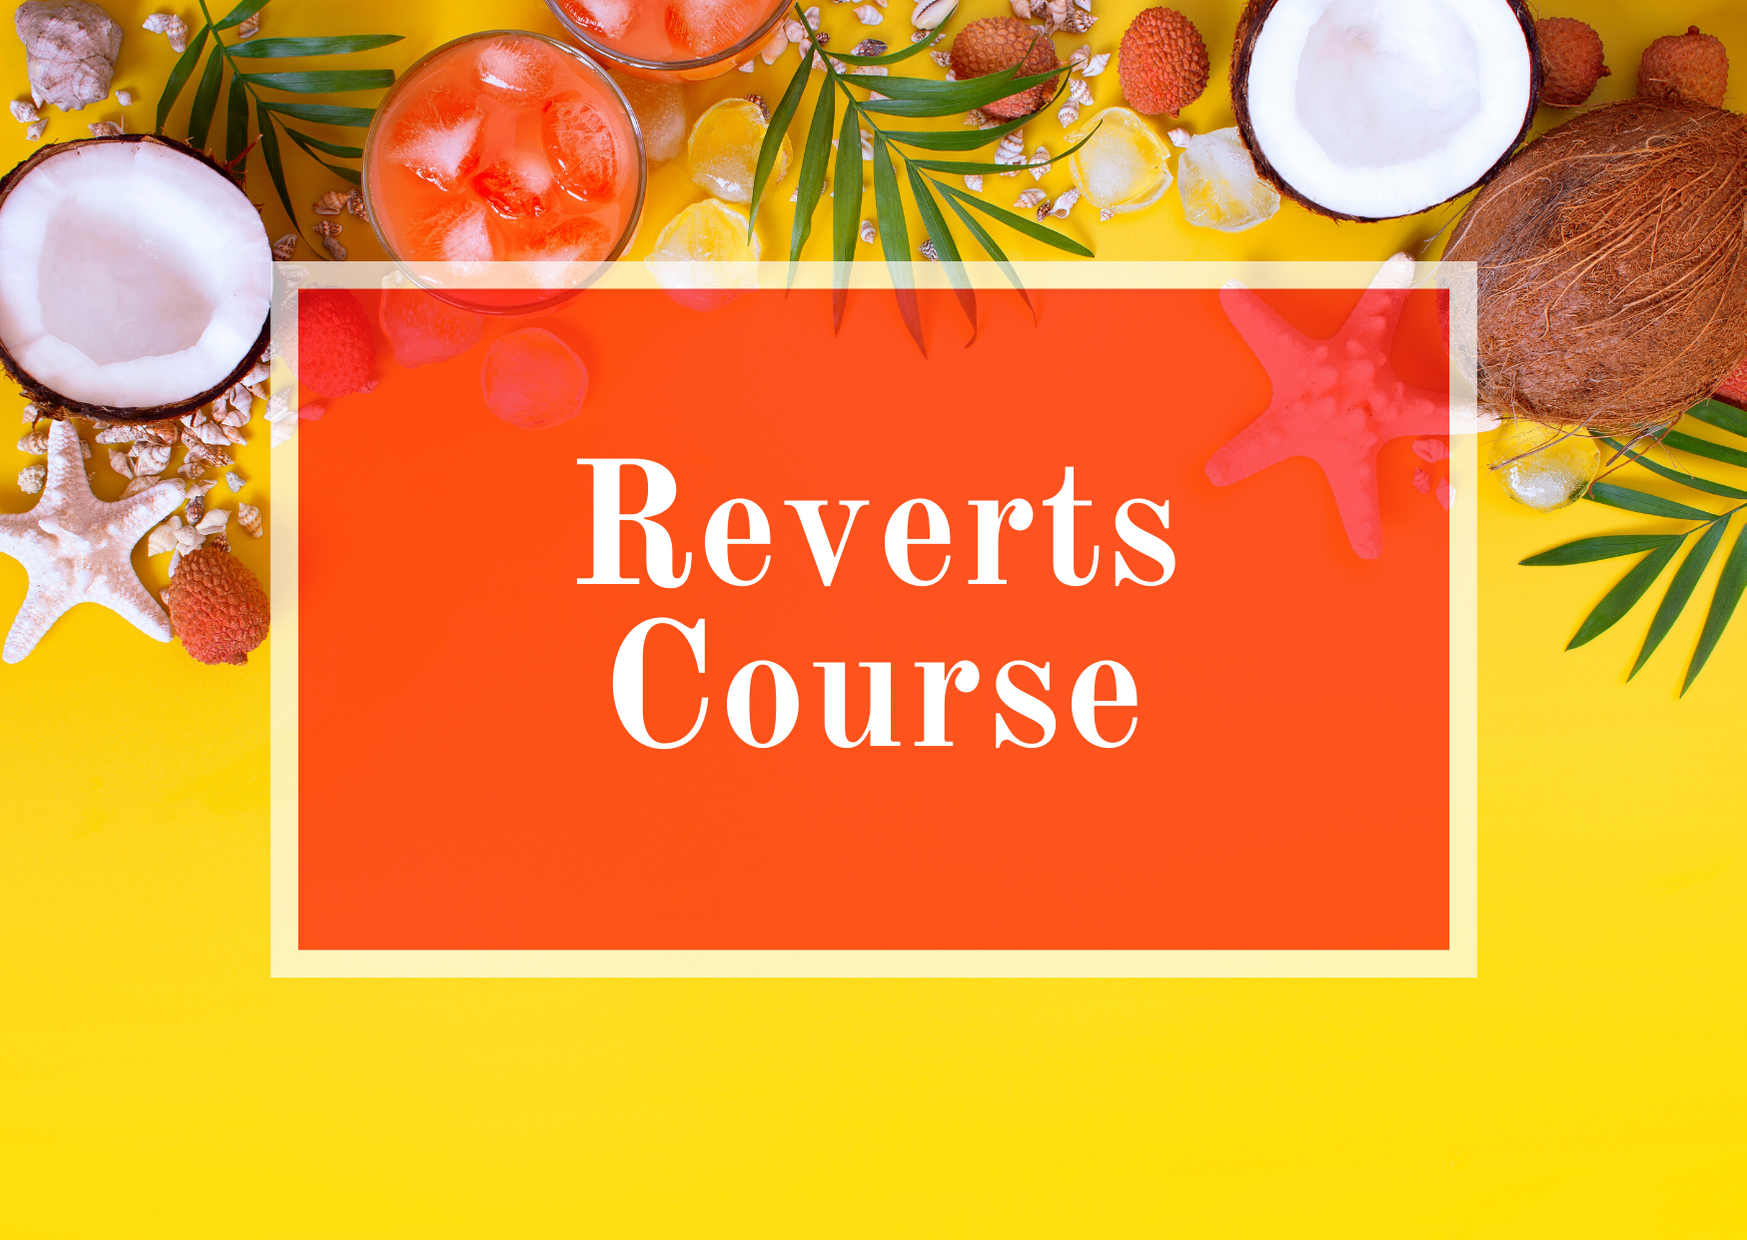 Reverts Course